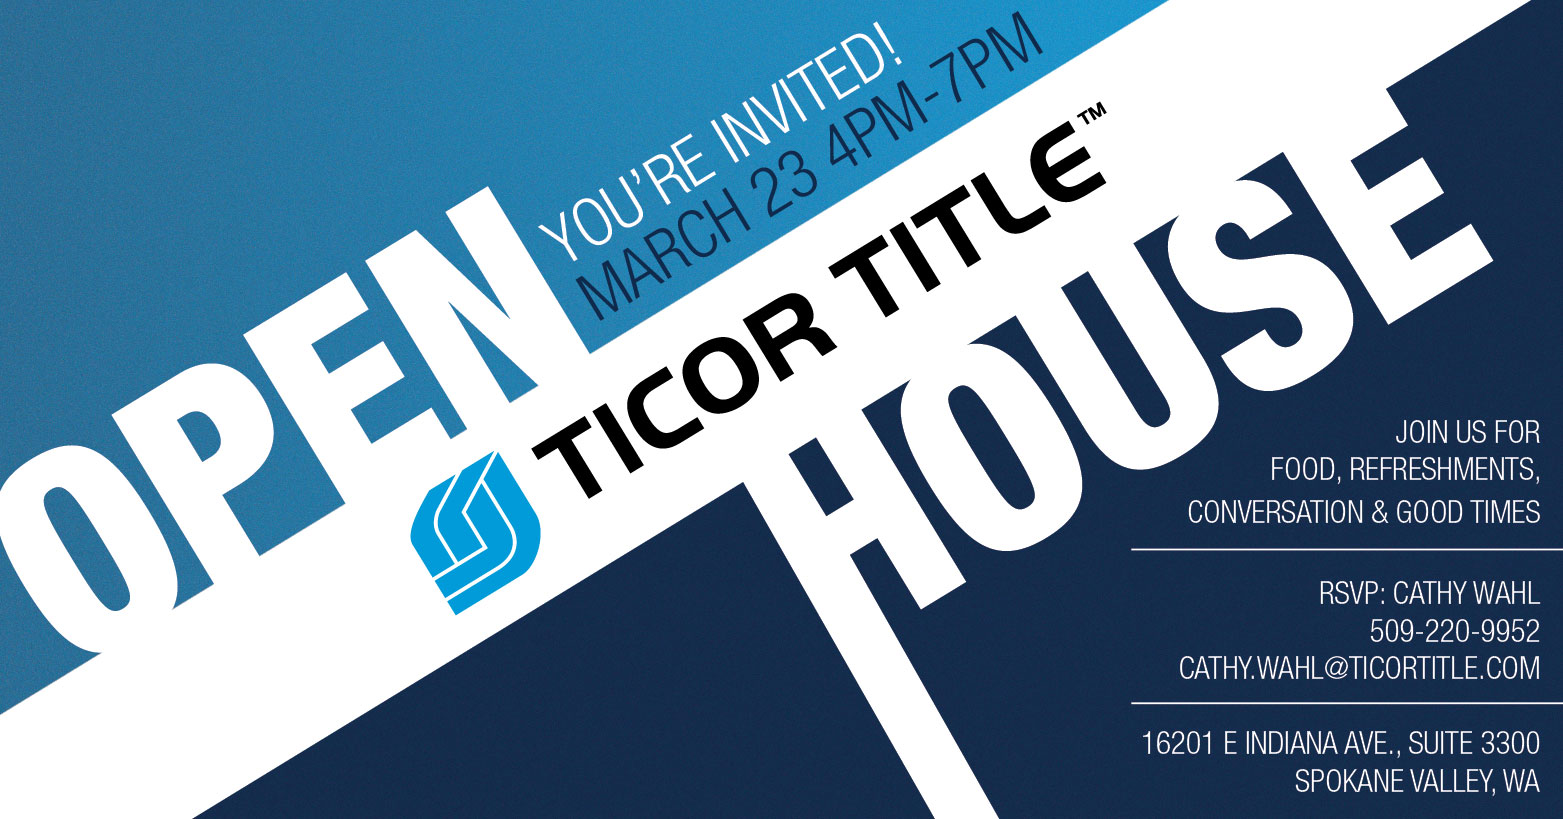 Ticor Title Spokane Valley Open House